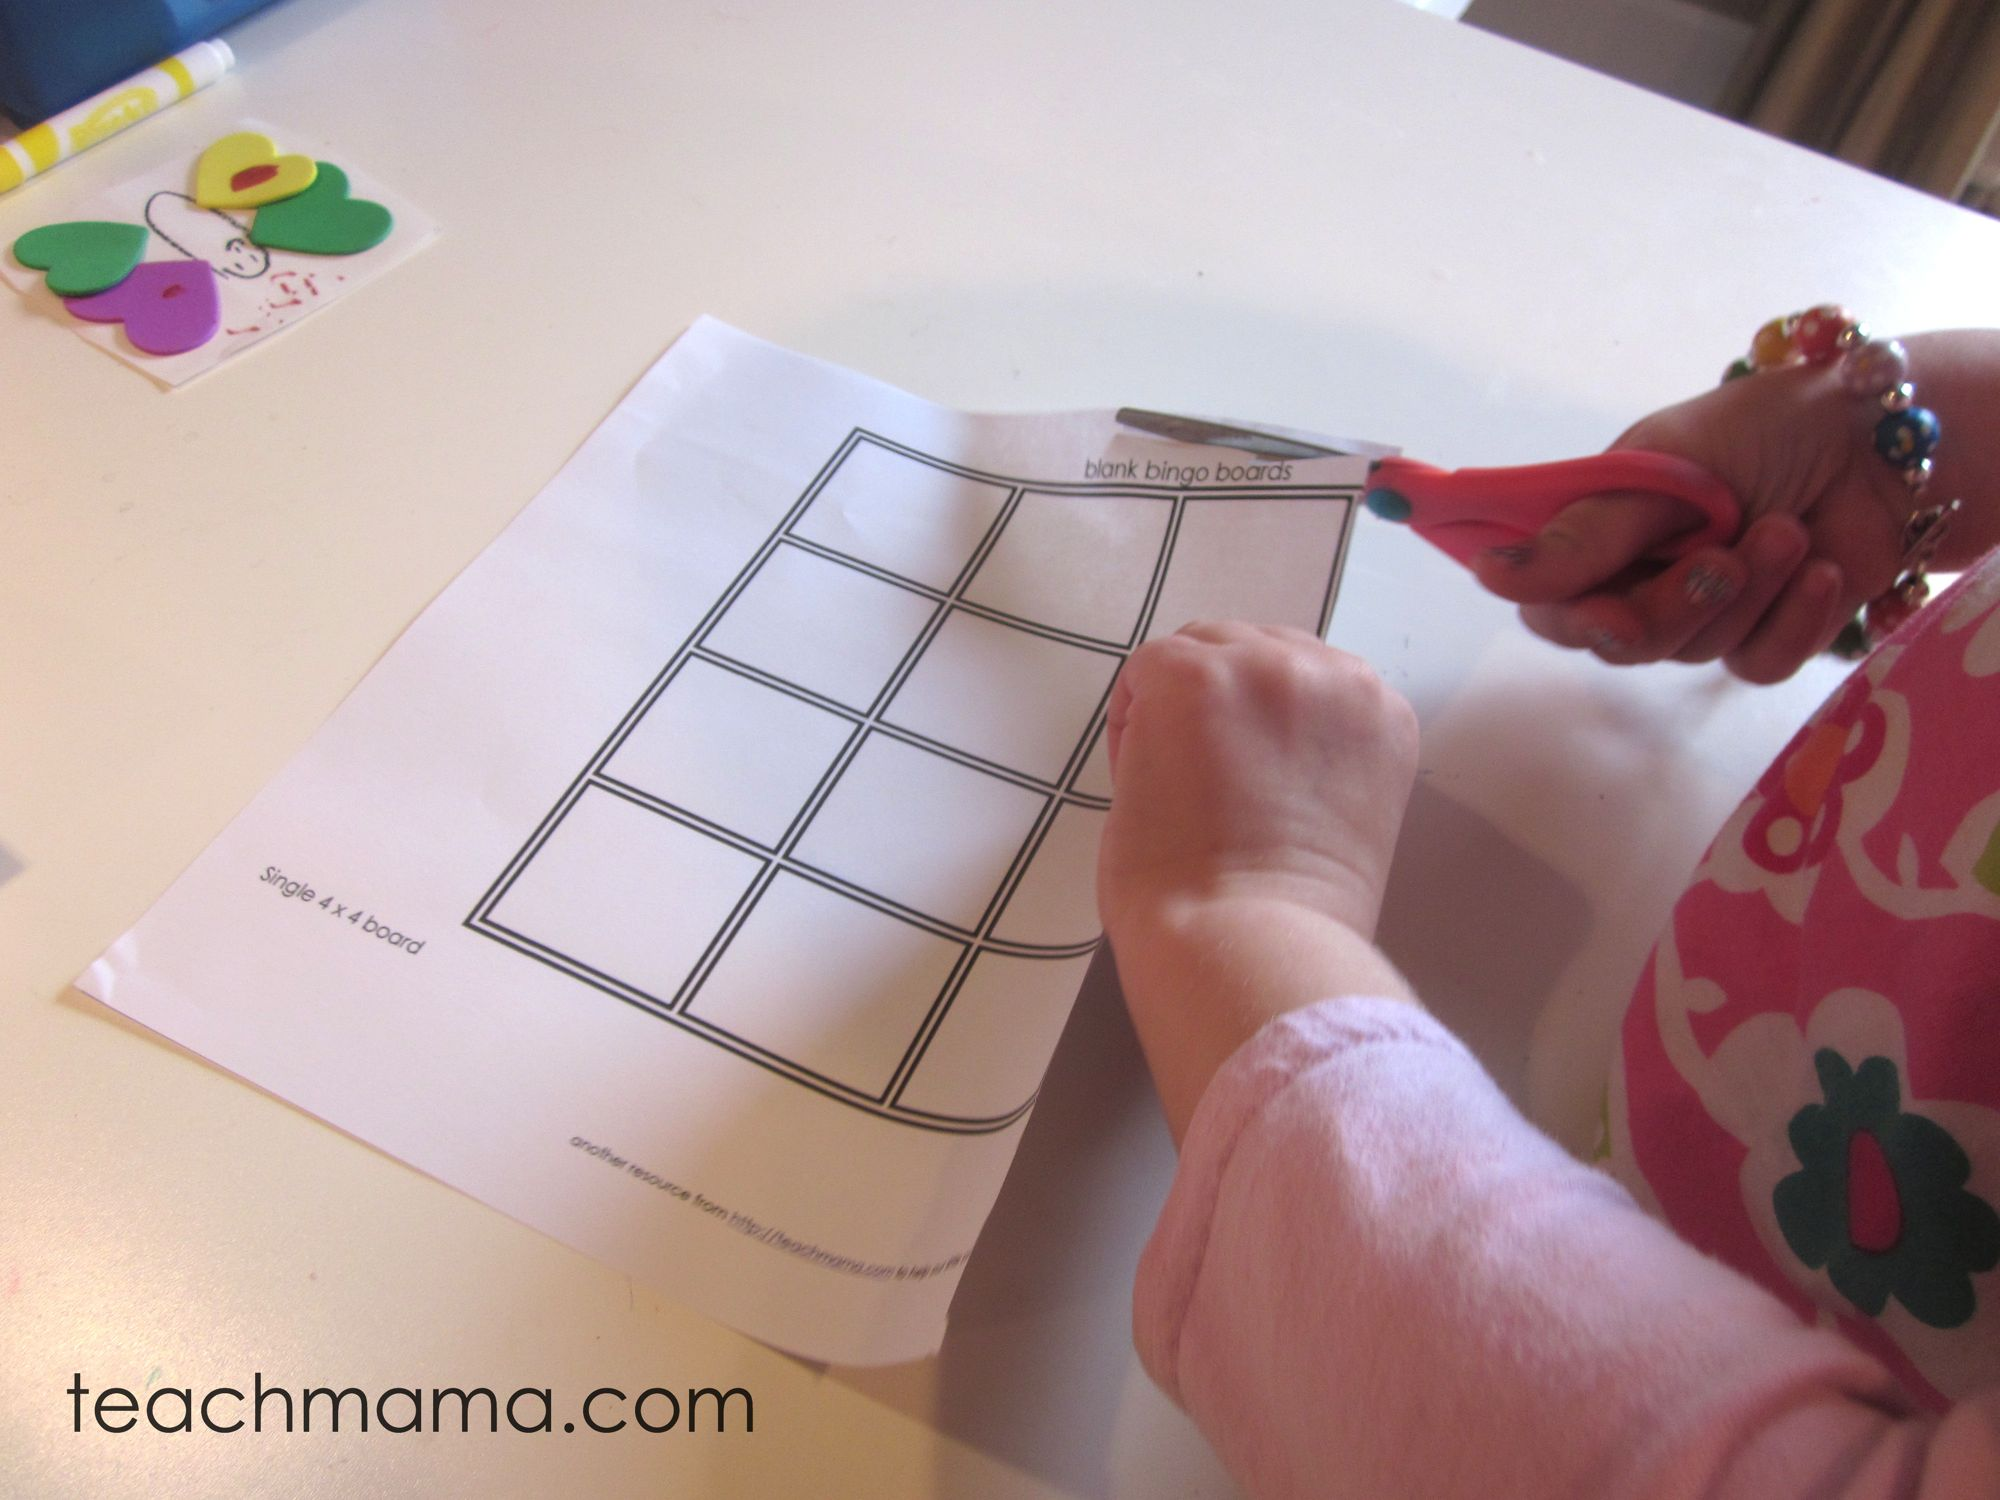 Build your own bingo games uppercase and lowercase letter match cora spiritdancerdesigns Choice Image